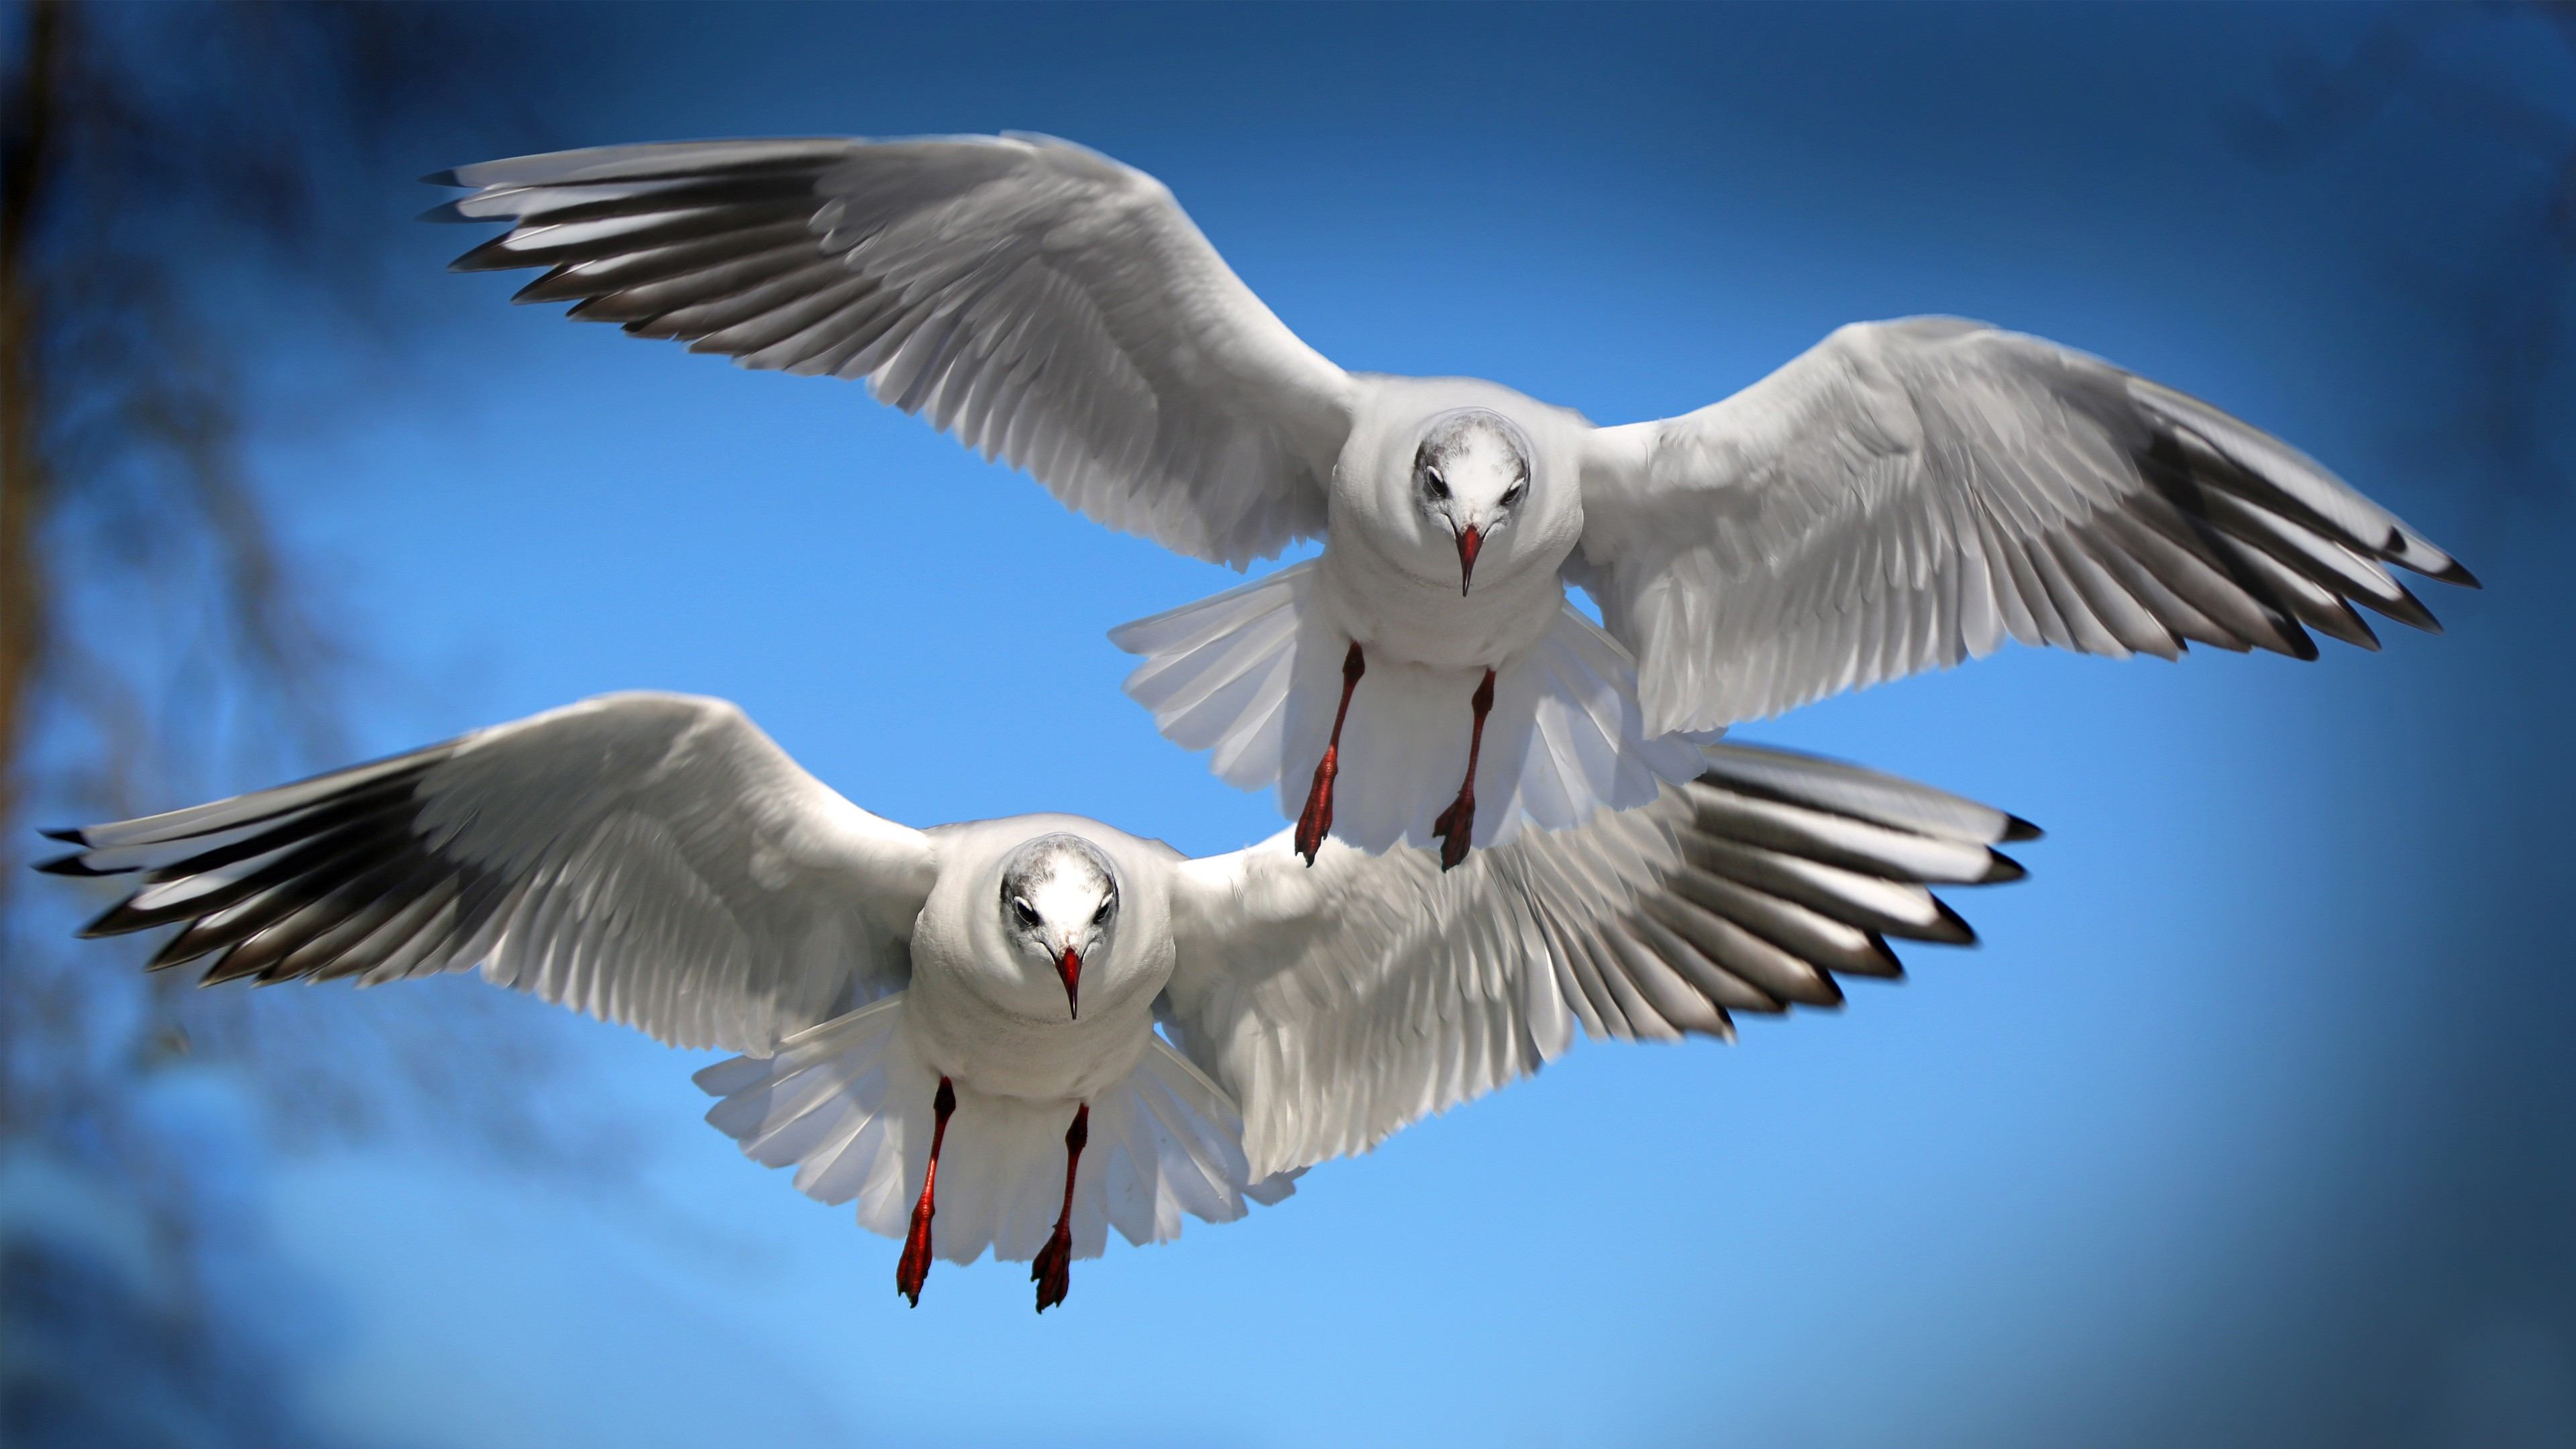 flying seagulls wallpaper 4k background